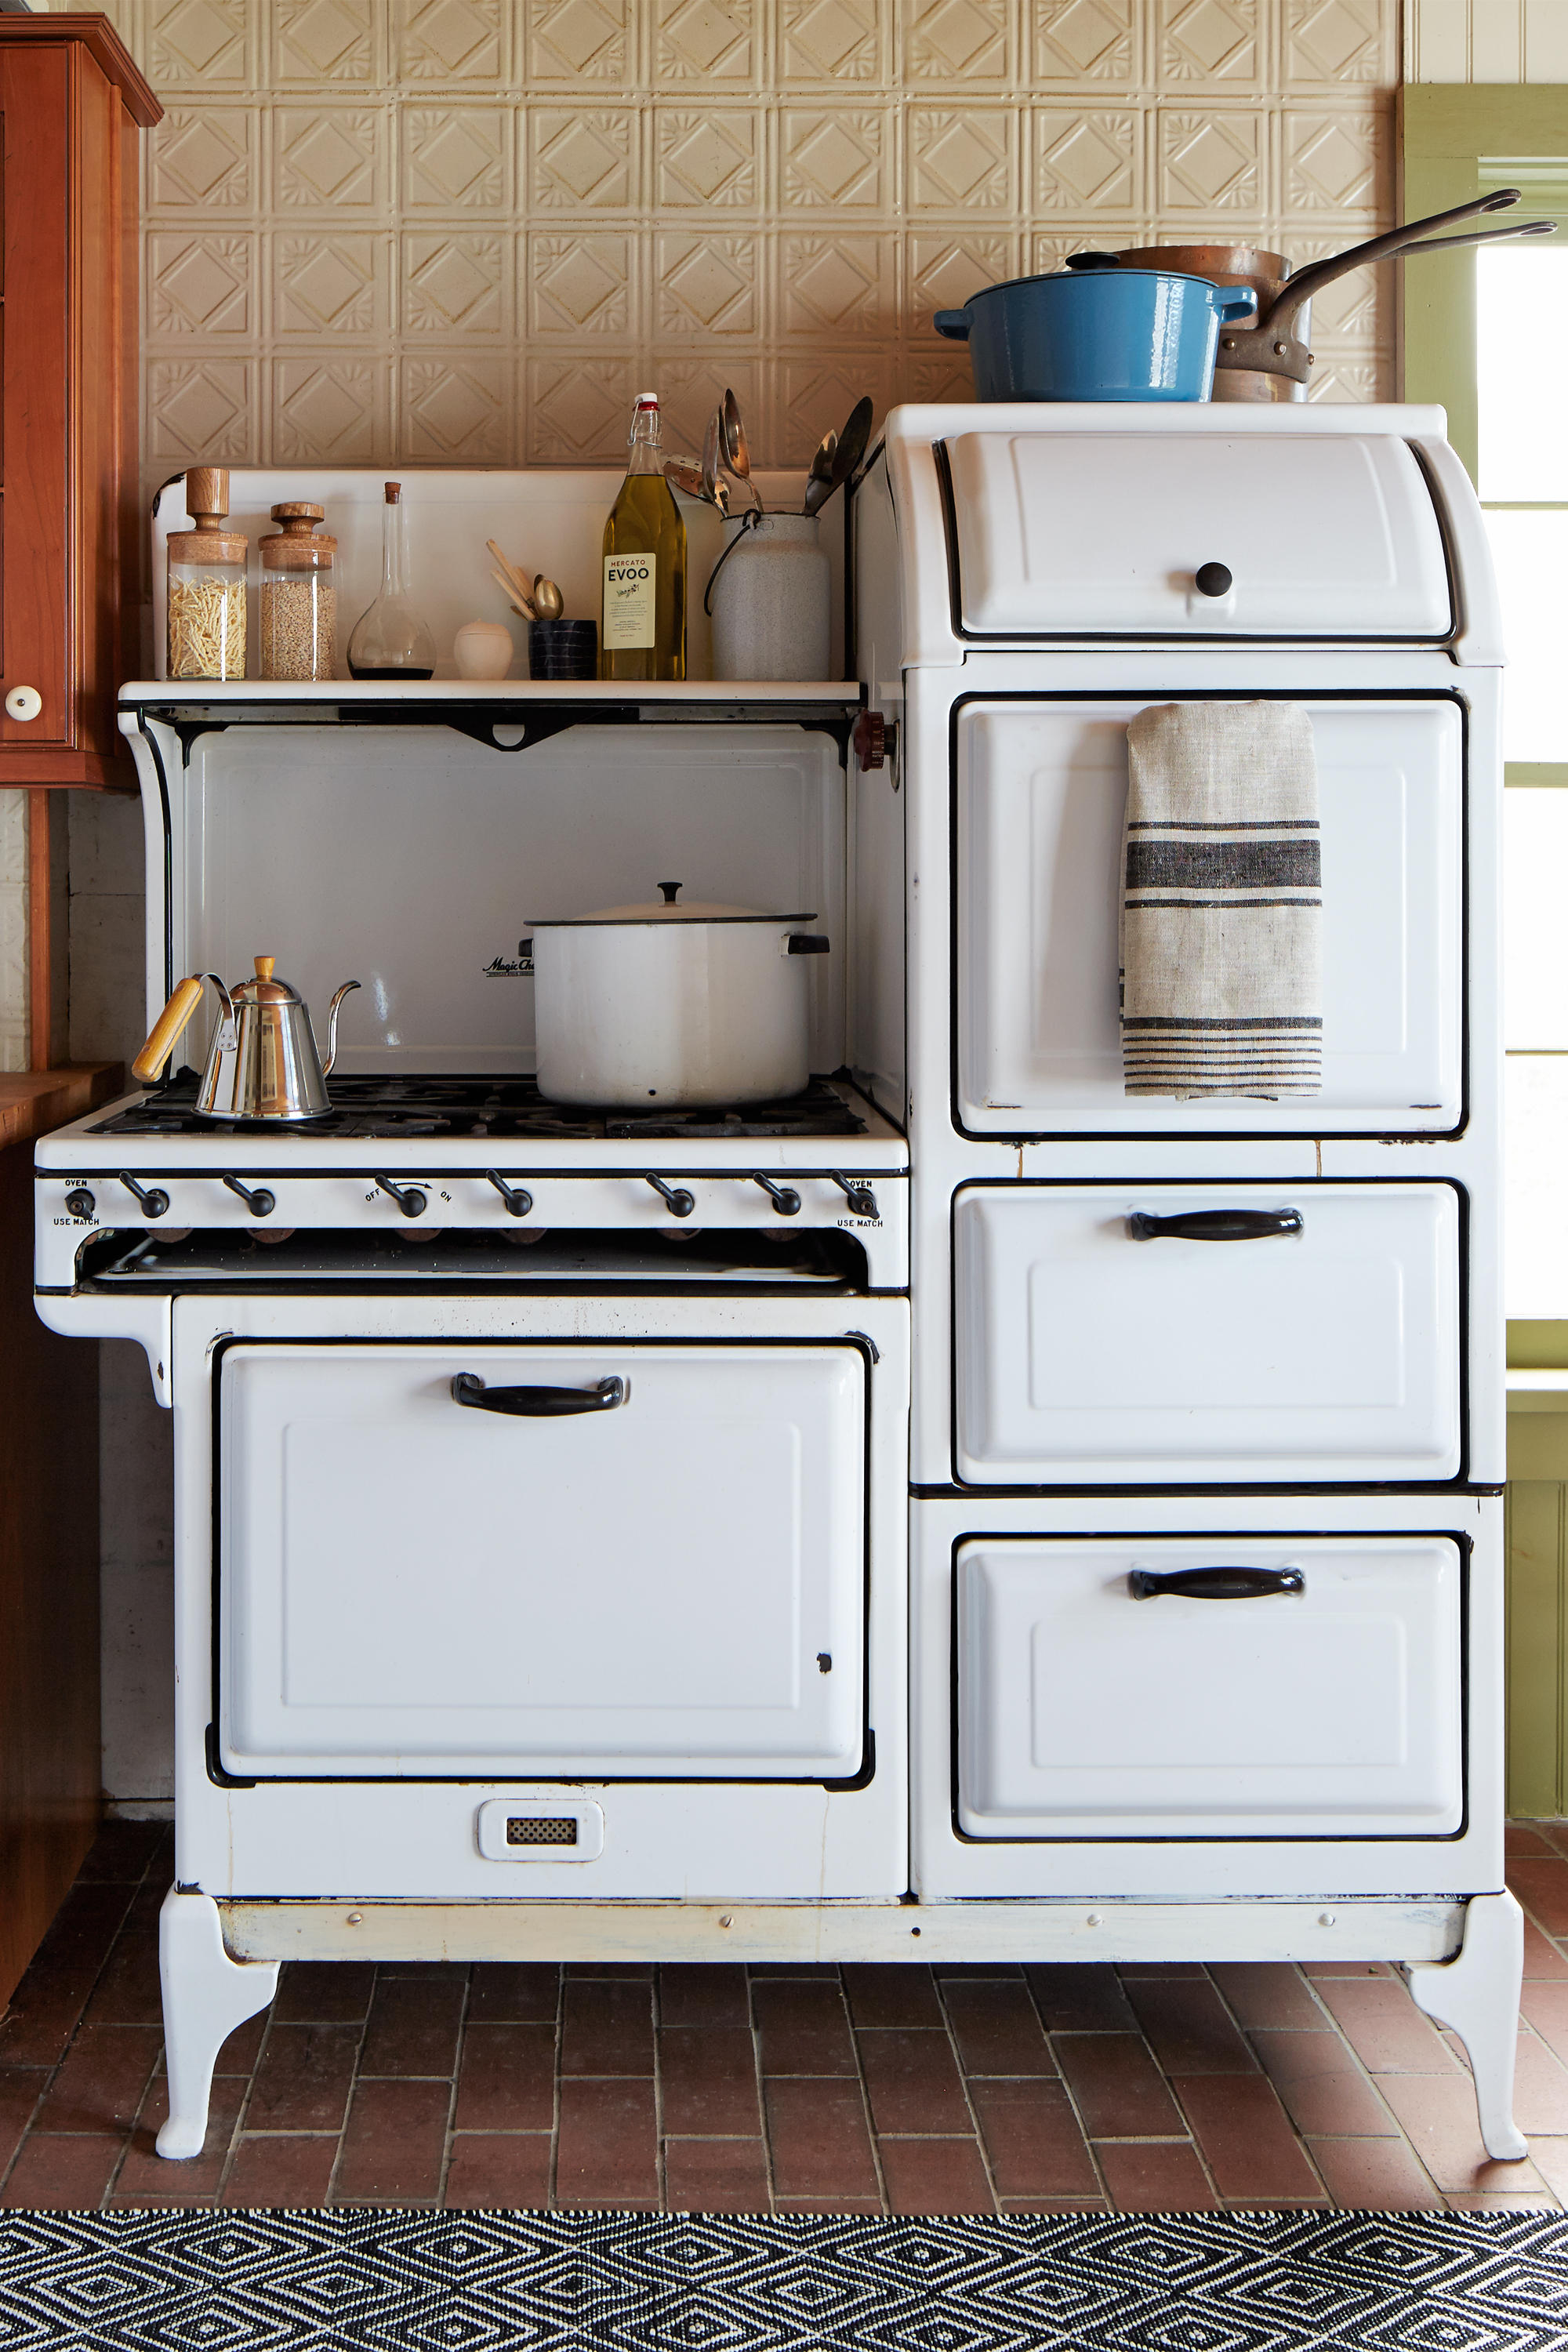 Antique Looking Kitchen Appliances 100 Kitchen Design Ideas Pictures Of Country Kitchen Decorating